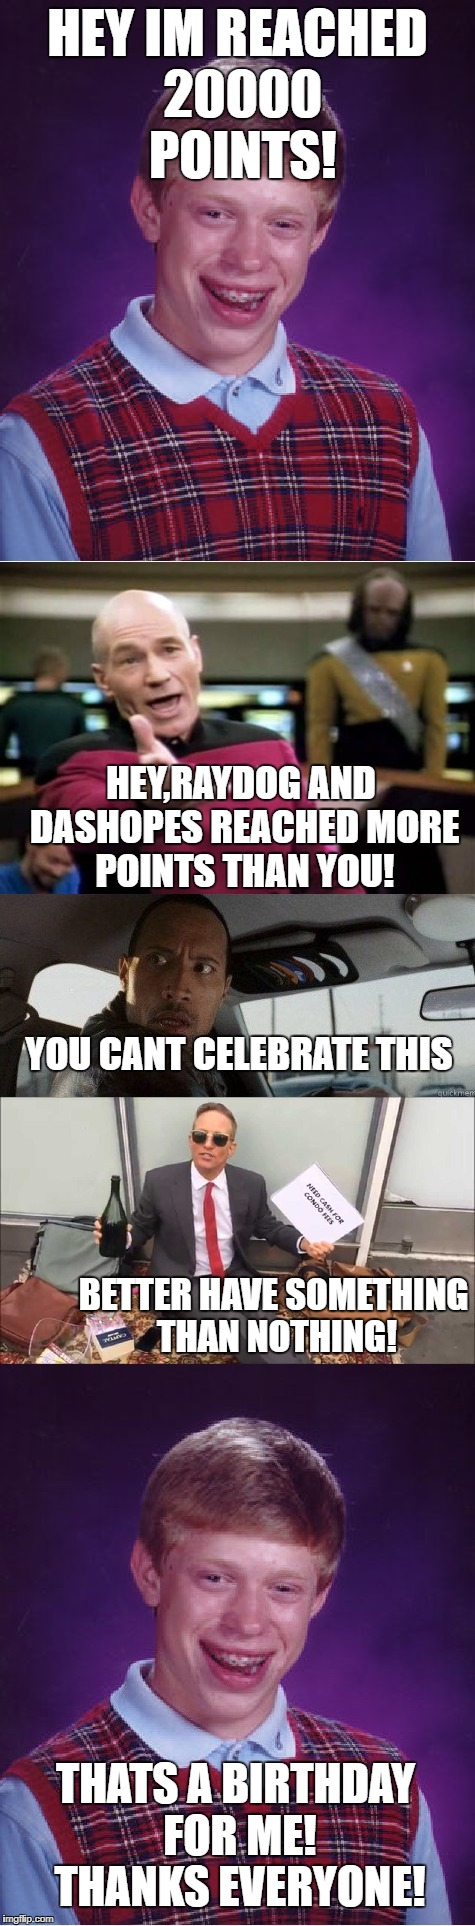 celebrating my 20k points | HEY IM REACHED 20000 POINTS! BETTER HAVE SOMETHING THAN NOTHING! YOU CANT CELEBRATE THIS HEY,RAYDOG AND DASHOPES REACHED MORE POINTS THAN YO | image tagged in bad luck brian,memes,thanks,meanwhile on imgflip,dashhopes,raydog | made w/ Imgflip meme maker